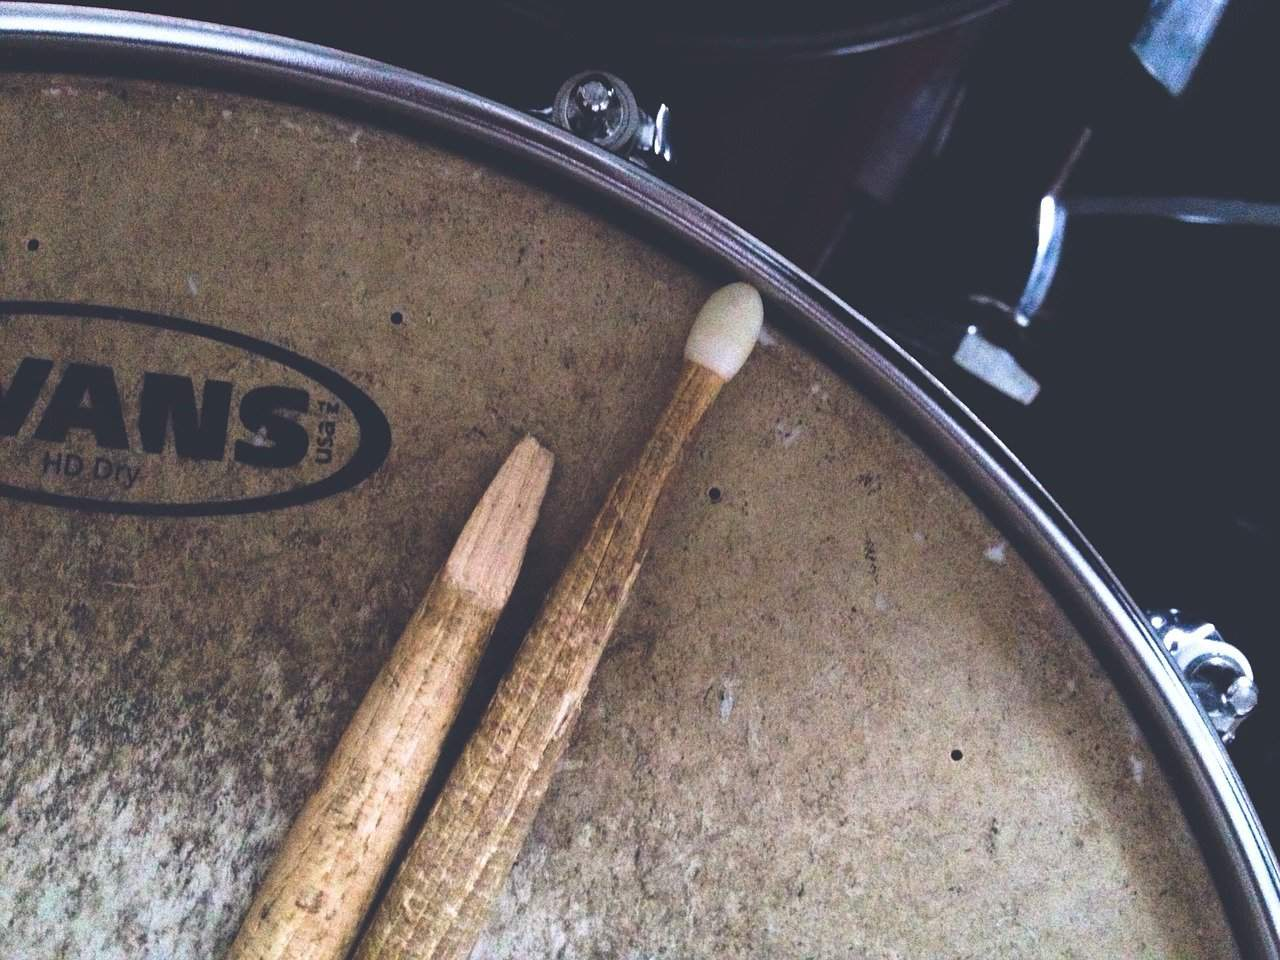 A Buyer's Guide to the Best Drum Practice Pad